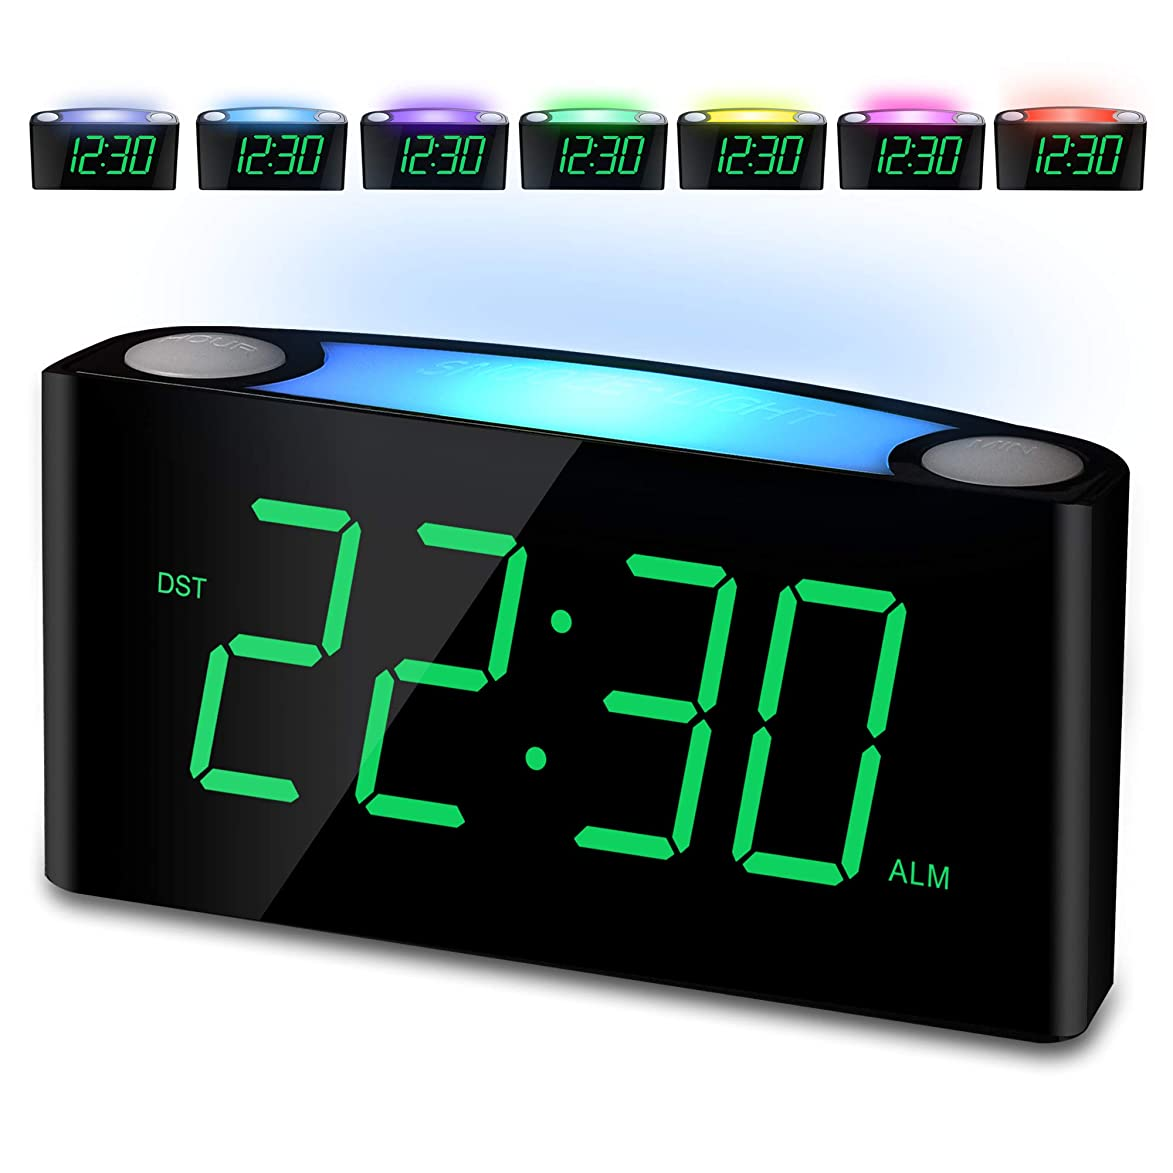 Alarm Clock, Large Number Digital LED Display with Dimmer, Night Light, USB Charging Port, Big Snooze, Easy to Set for Kids Seniors, Loud Bedroom Alarm Clock for Heavy Sleepers Teens, Home Desk Travel